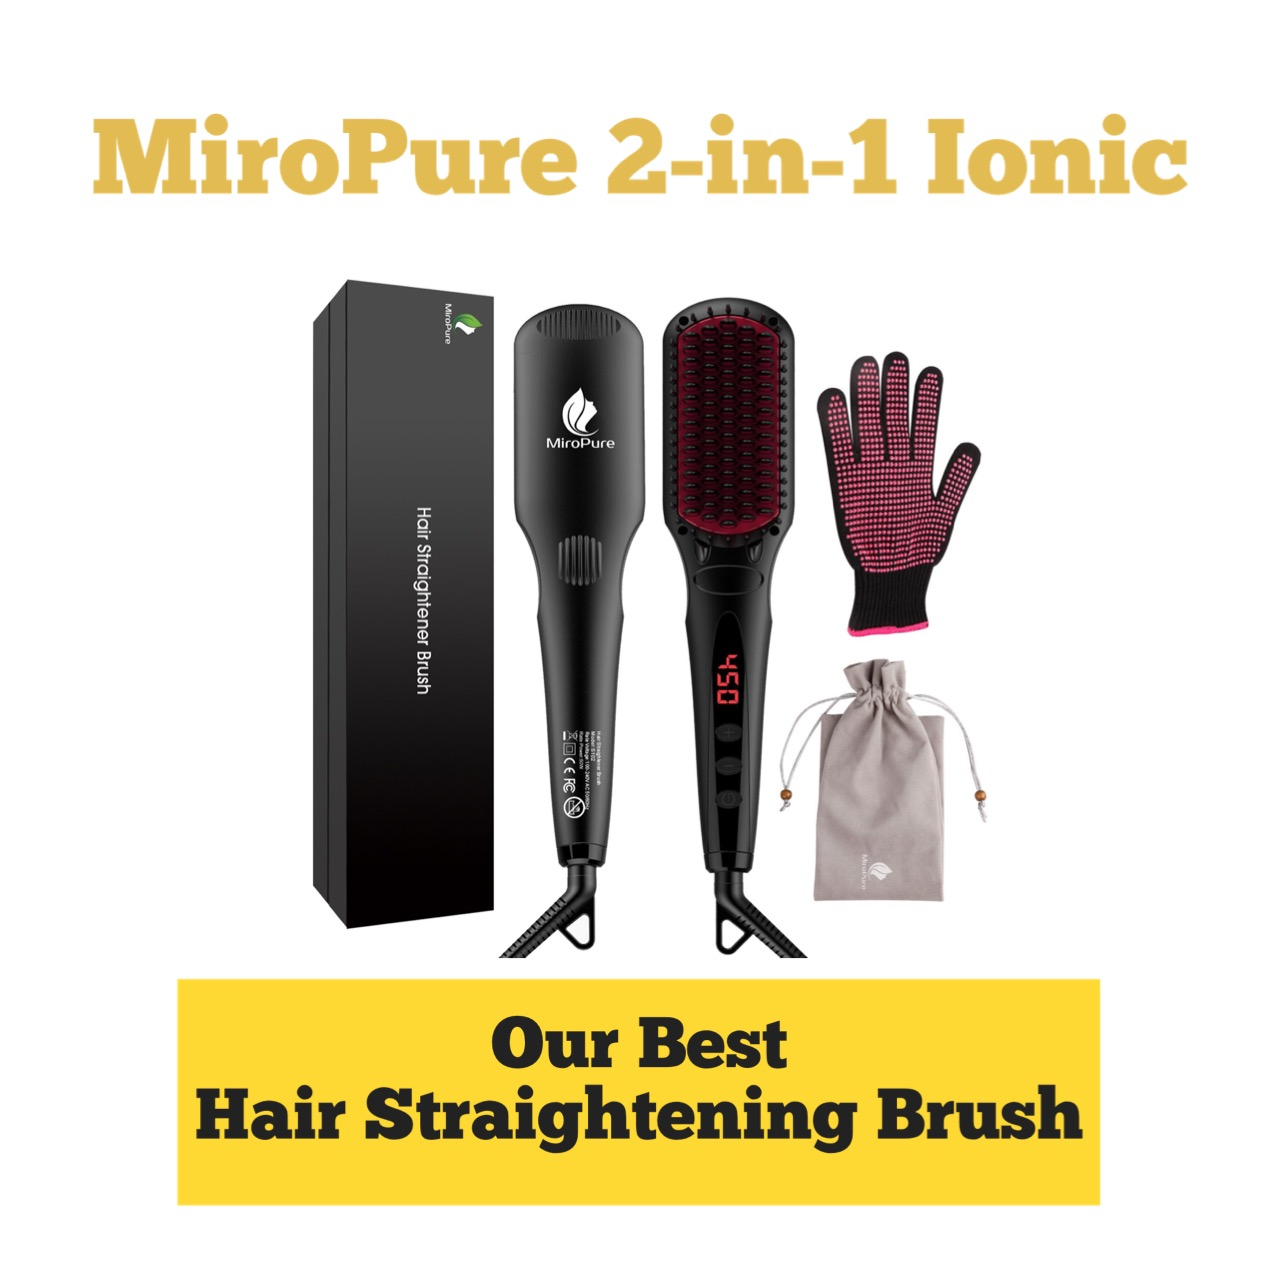 MiroPure straightening brush